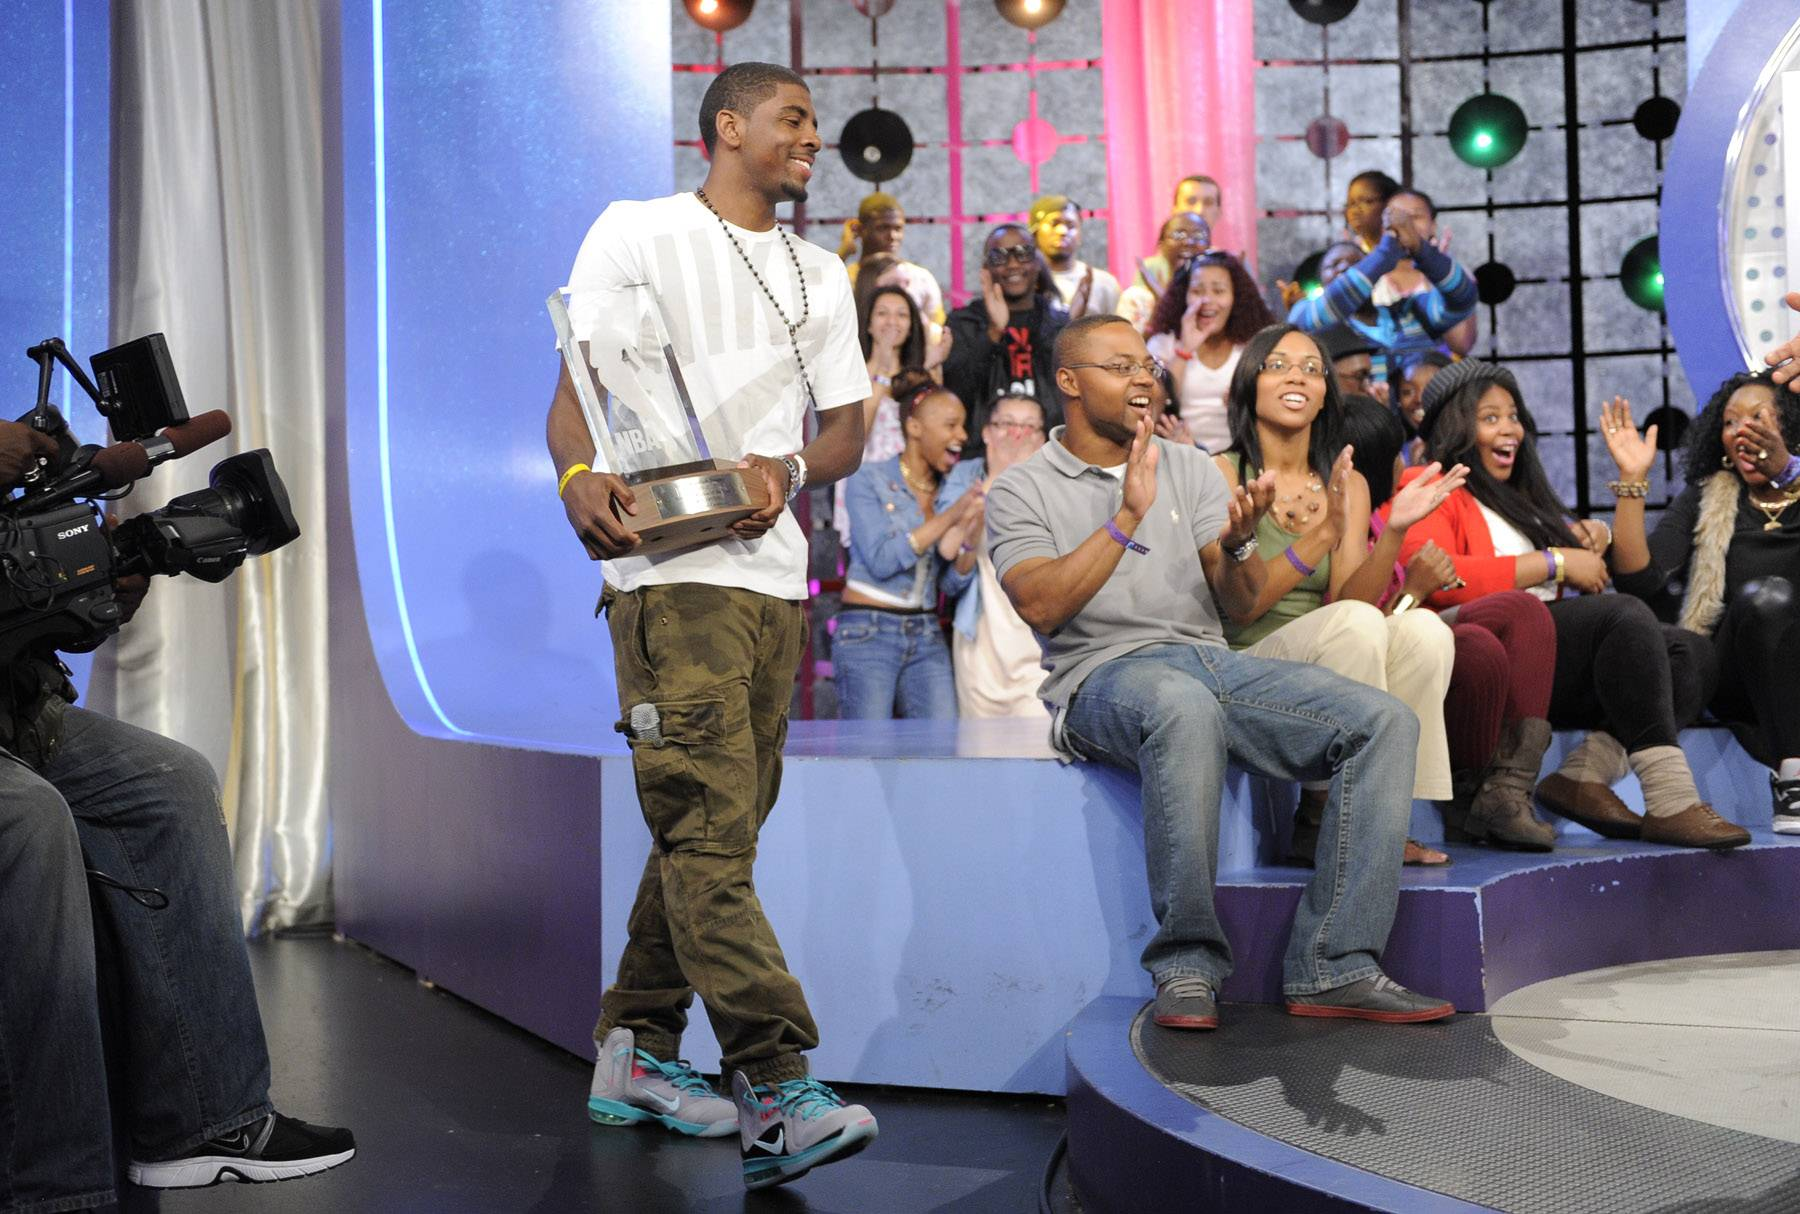 Bawling.. - Kyrie Irving of the Clevaland Cavaliers at 106 & Park, May 16, 2012. (Photo: John Ricard / BET)